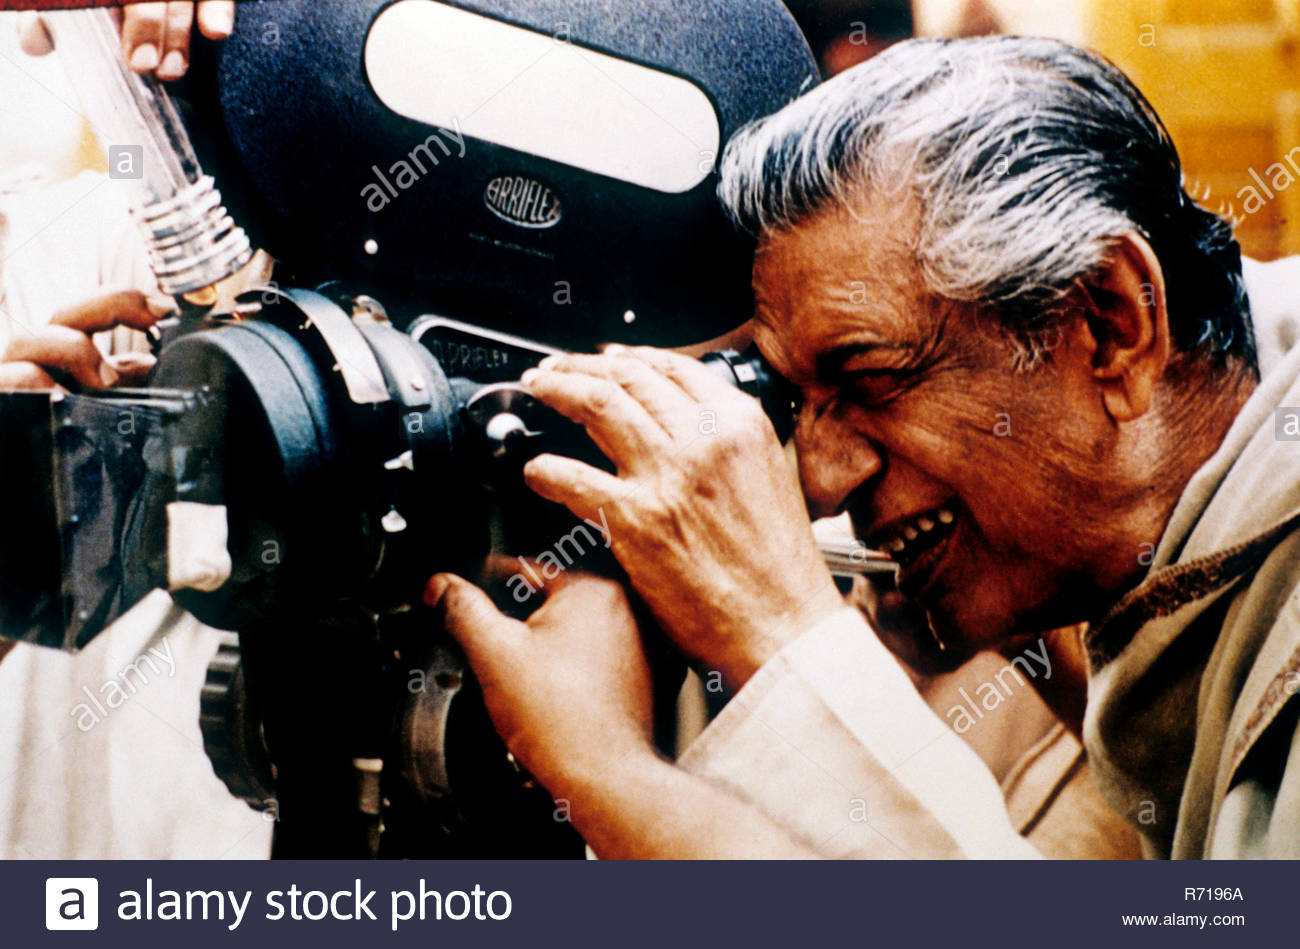 satyajit ray, movies, director, india MODEL RELEASE NOT AVAILABLE - Stock Image